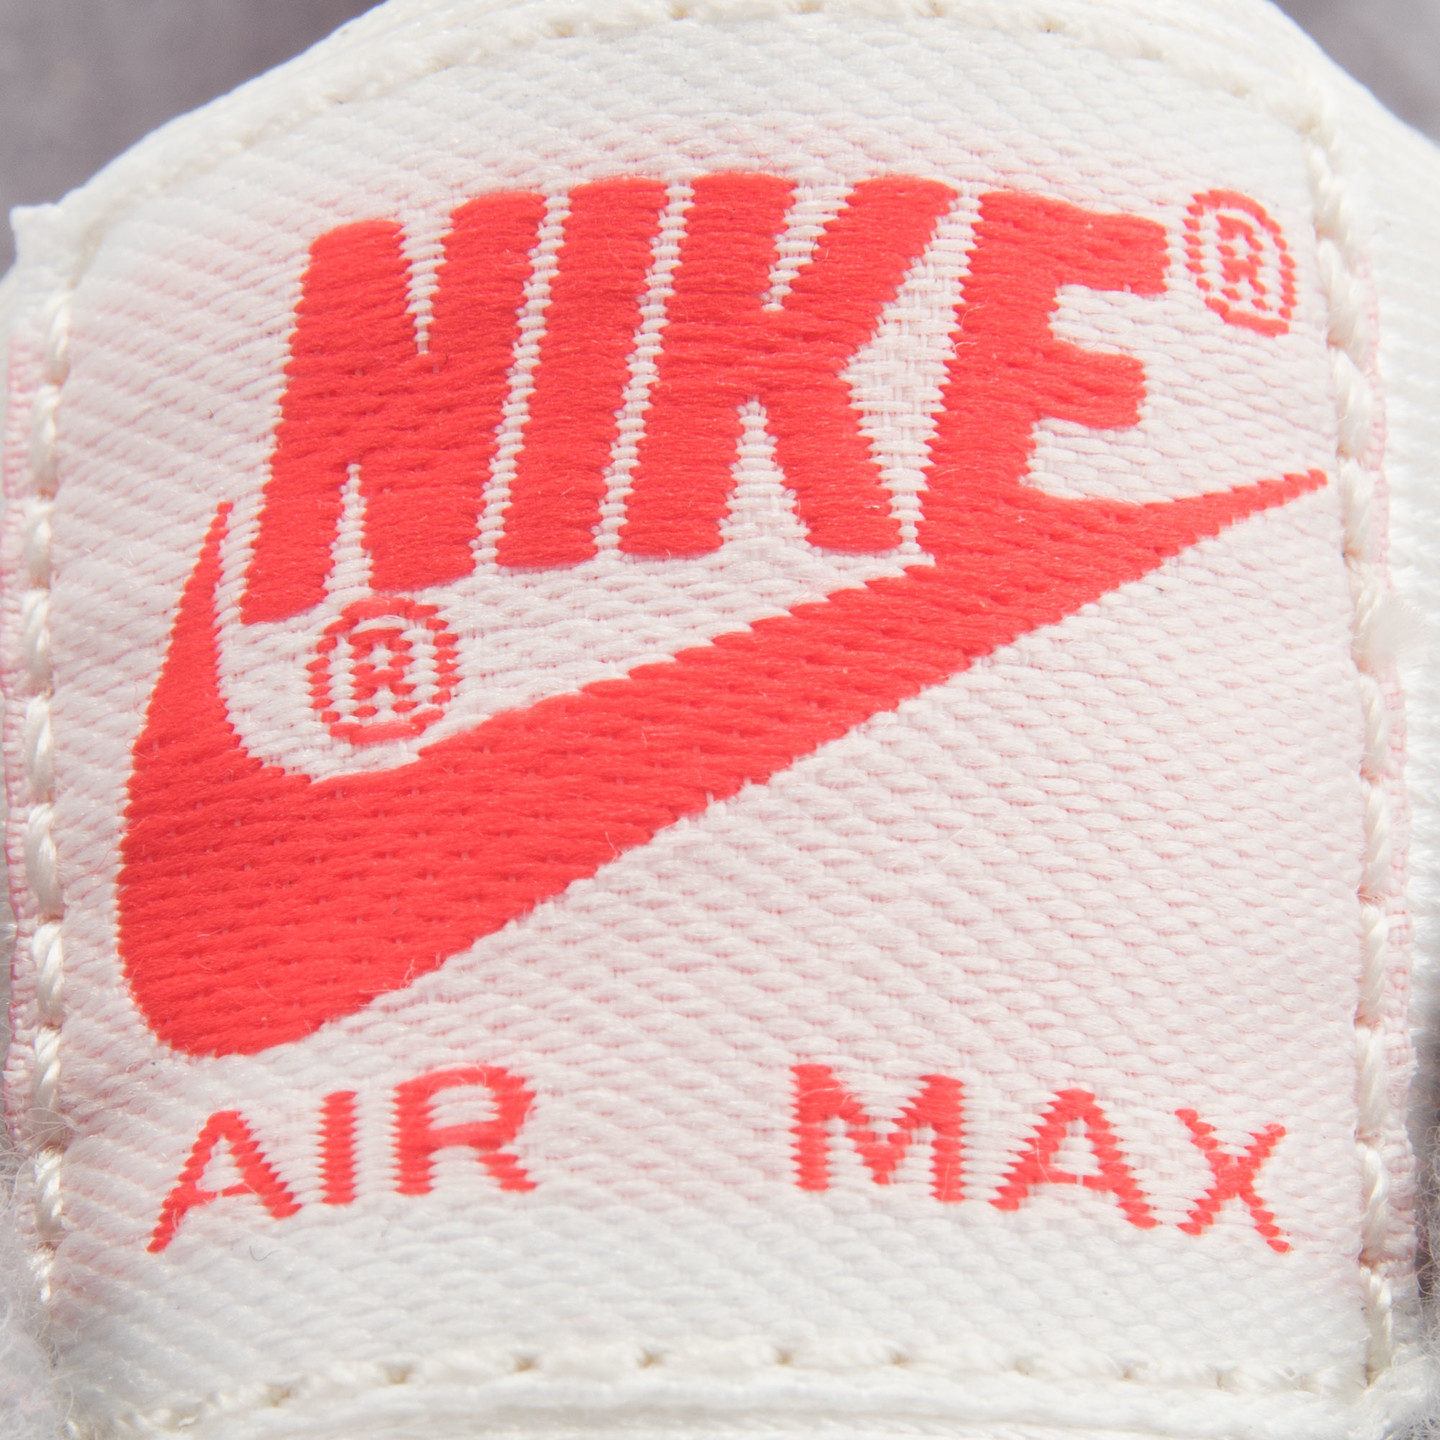 Nike Air Max 90 OG Vintage Infrared Sail/Cool Grey-Mdm Grey-Infrrd 543361-161-43